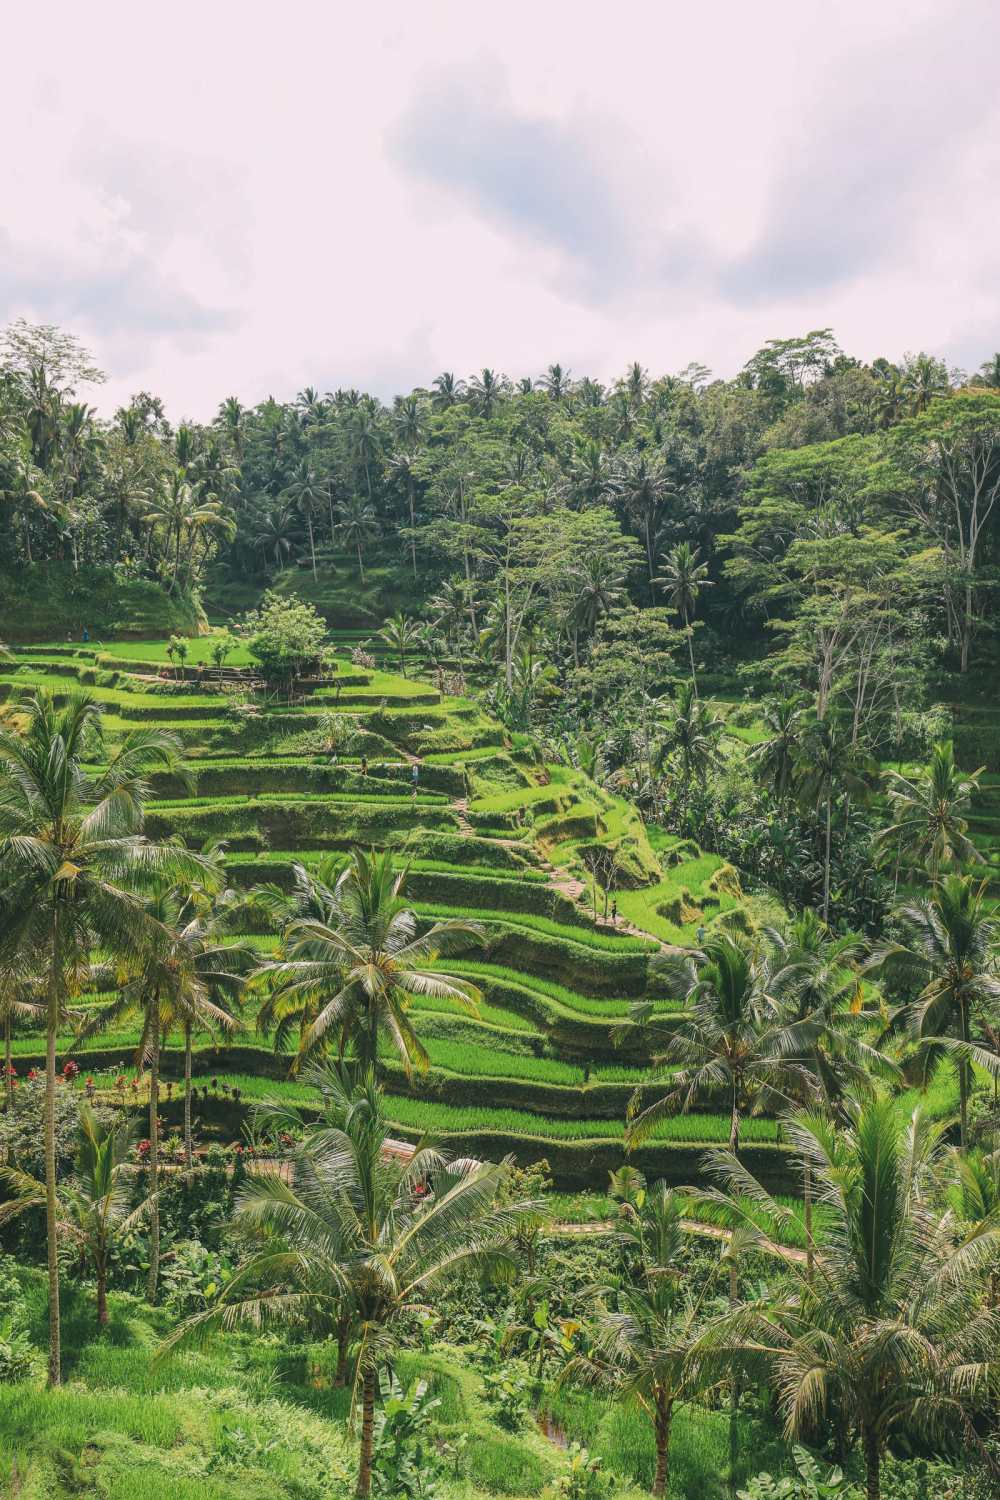 Bali Travel - Tegalalang Rice Terrace In Ubud And Gunung Kawi Temple (3)